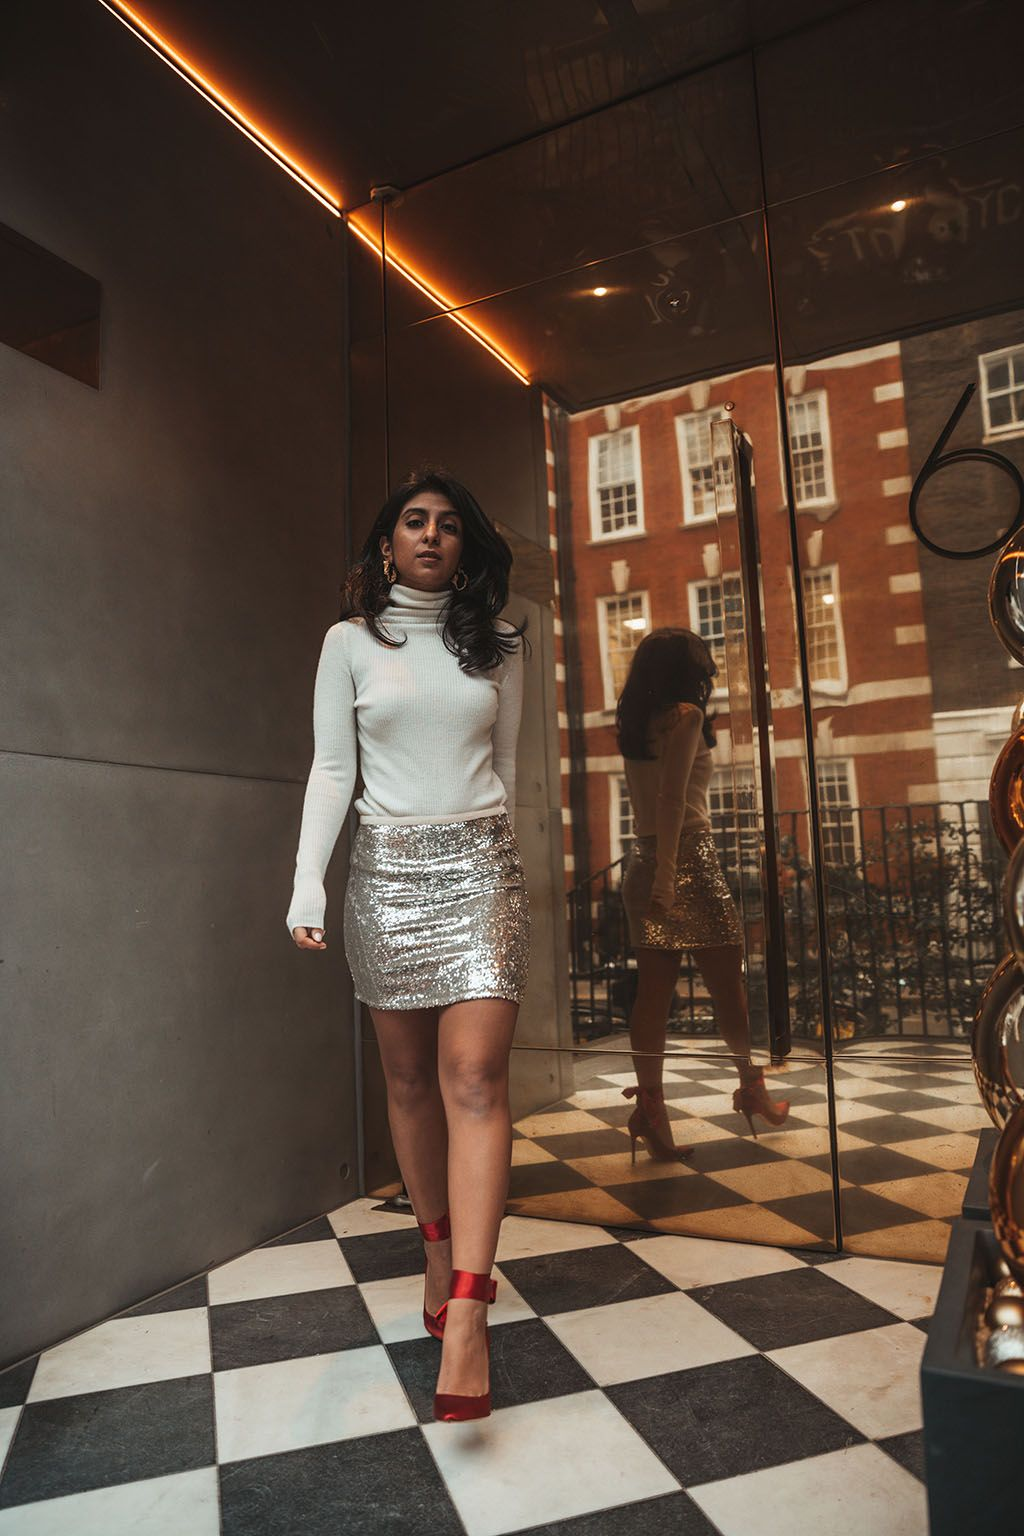 56aab600d14 Luxury fashion blogger Shloka Narang of The Silk Sneaker shares a holiday  party outfit idea featuring a sequins skirt from Topshop and Gianvitto  Rossi heels